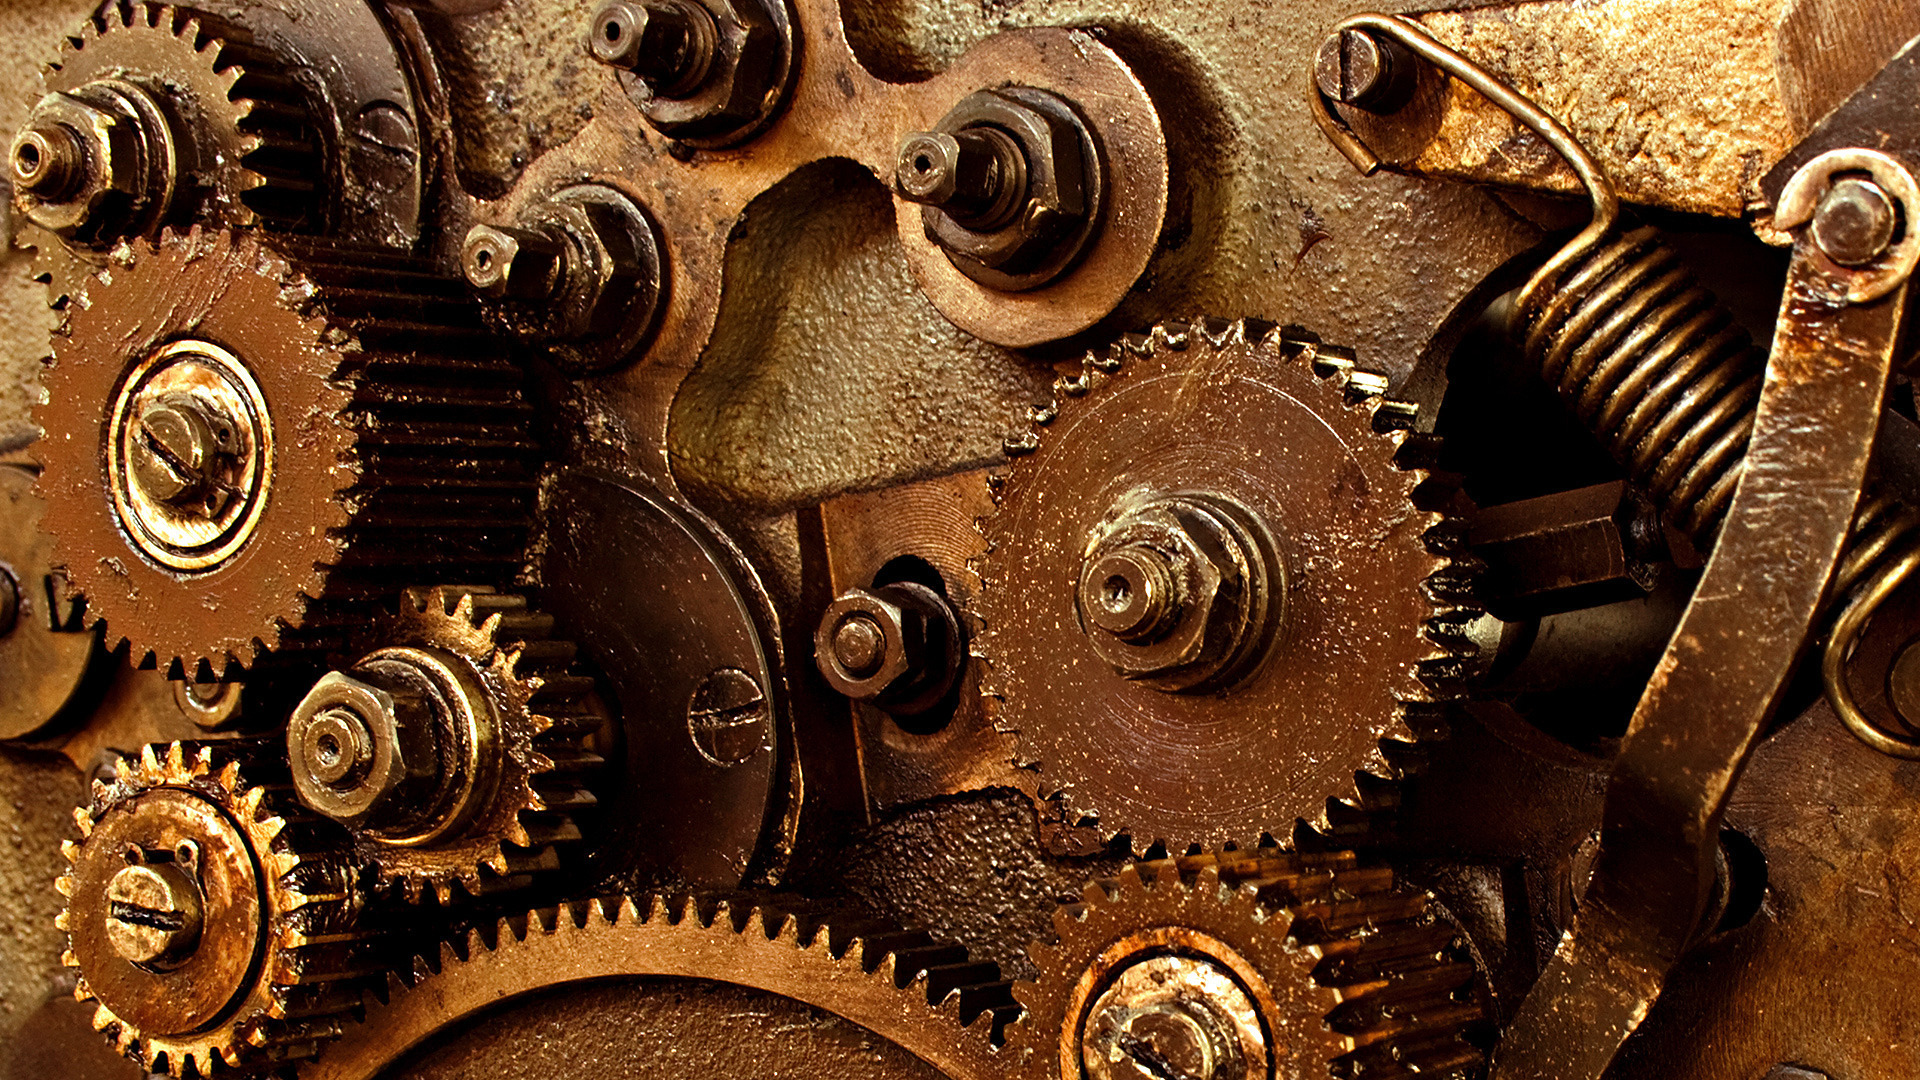 brass gears machine details pinterest wallpaper mobile wallpaper and computer wallpaper